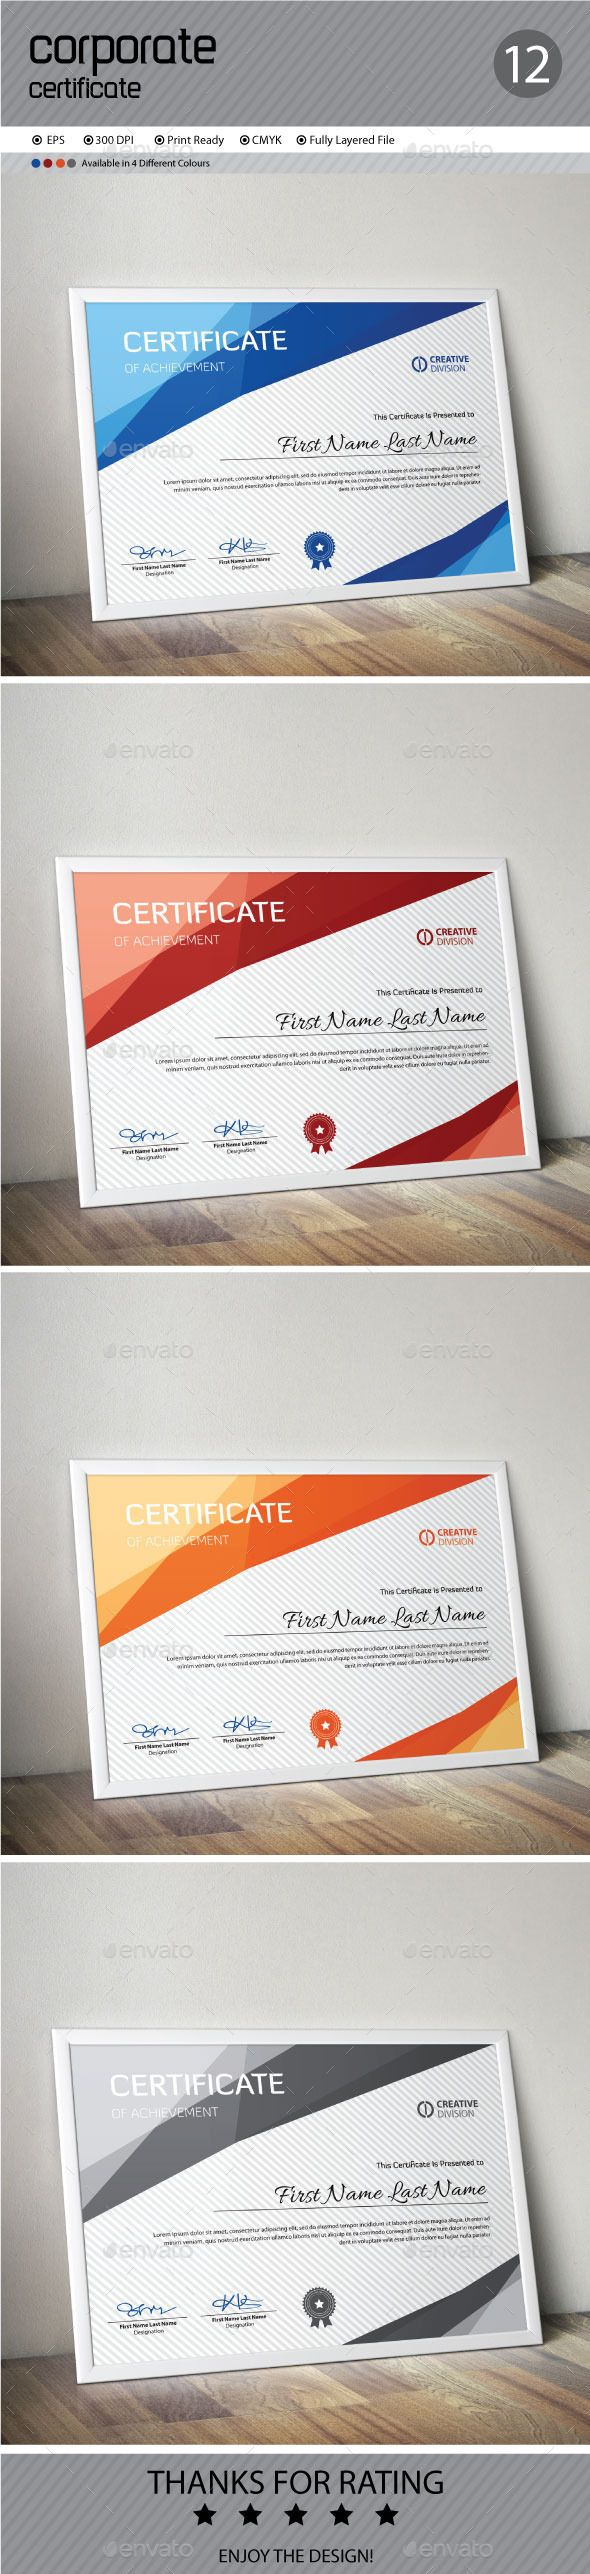 Certificate Template Vector EPS. Download here: http://graphicriver.net/item/certificate/12367206?ref=ksioks